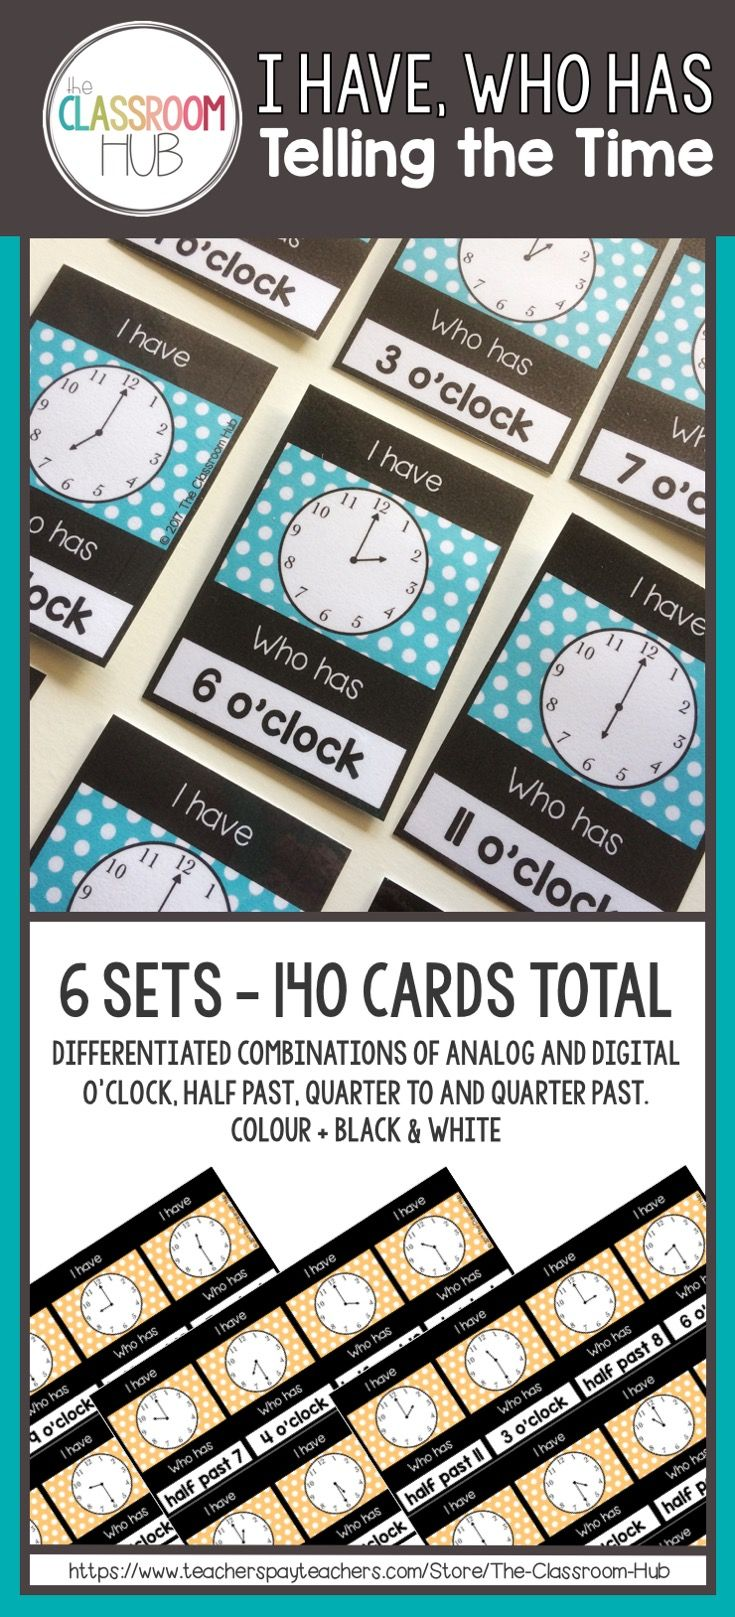 I Have, Who Has : Telling Time is a handy set of cards to use with your K-2 class. Ideal as part of a lesson on telling time, a warm up or as a break between lessons.